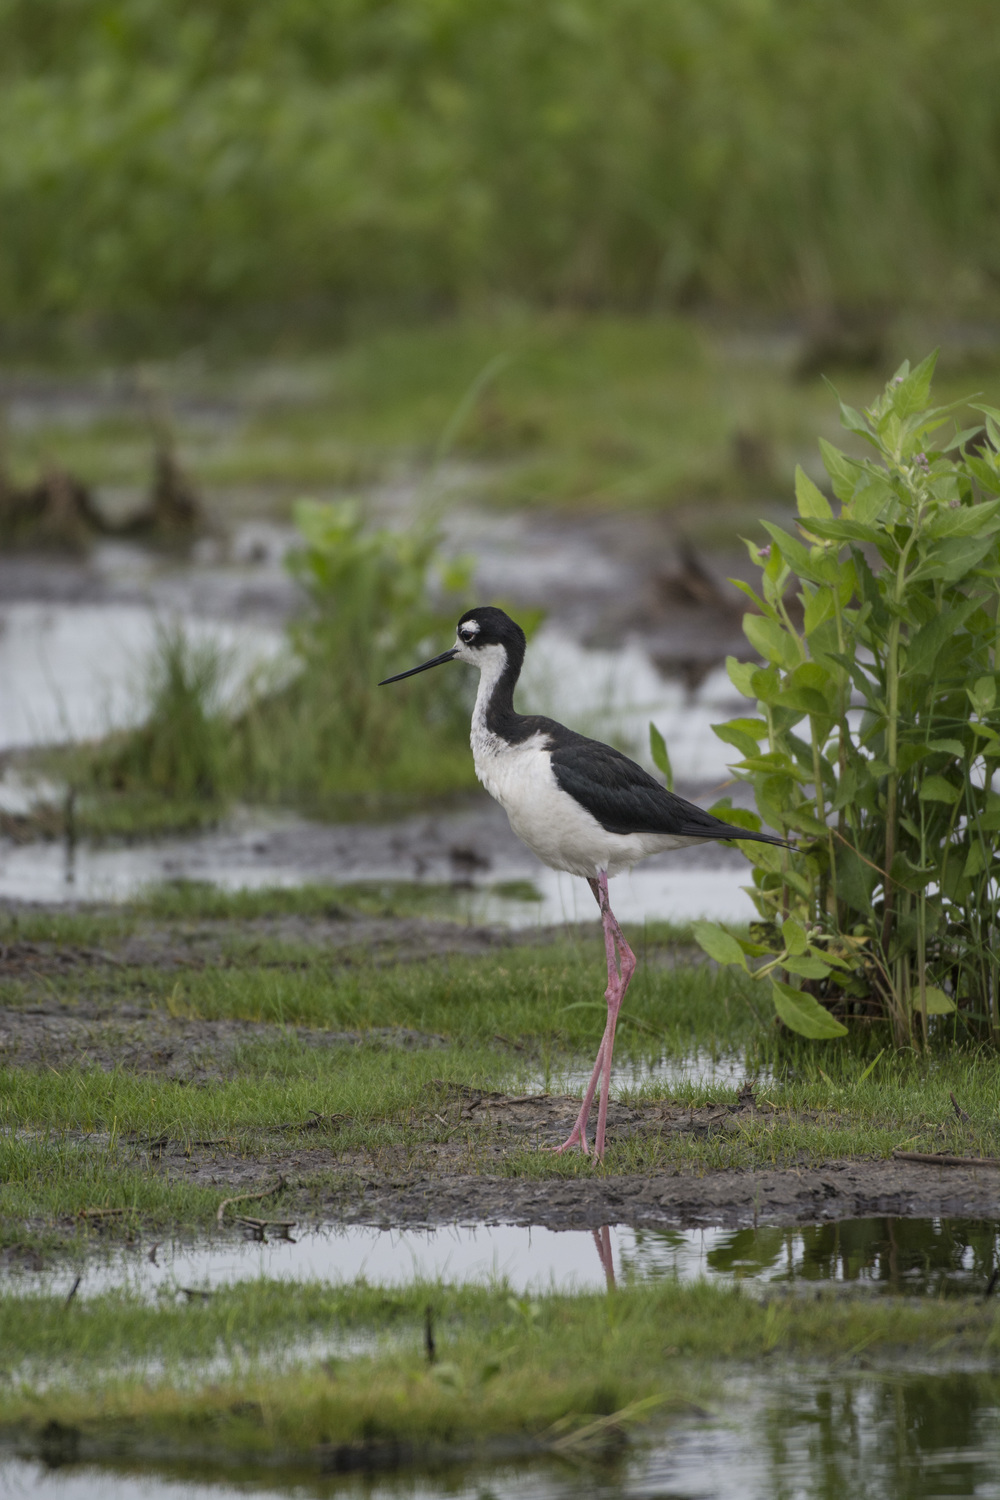 Black neck stilt at Bombay Hook NWR